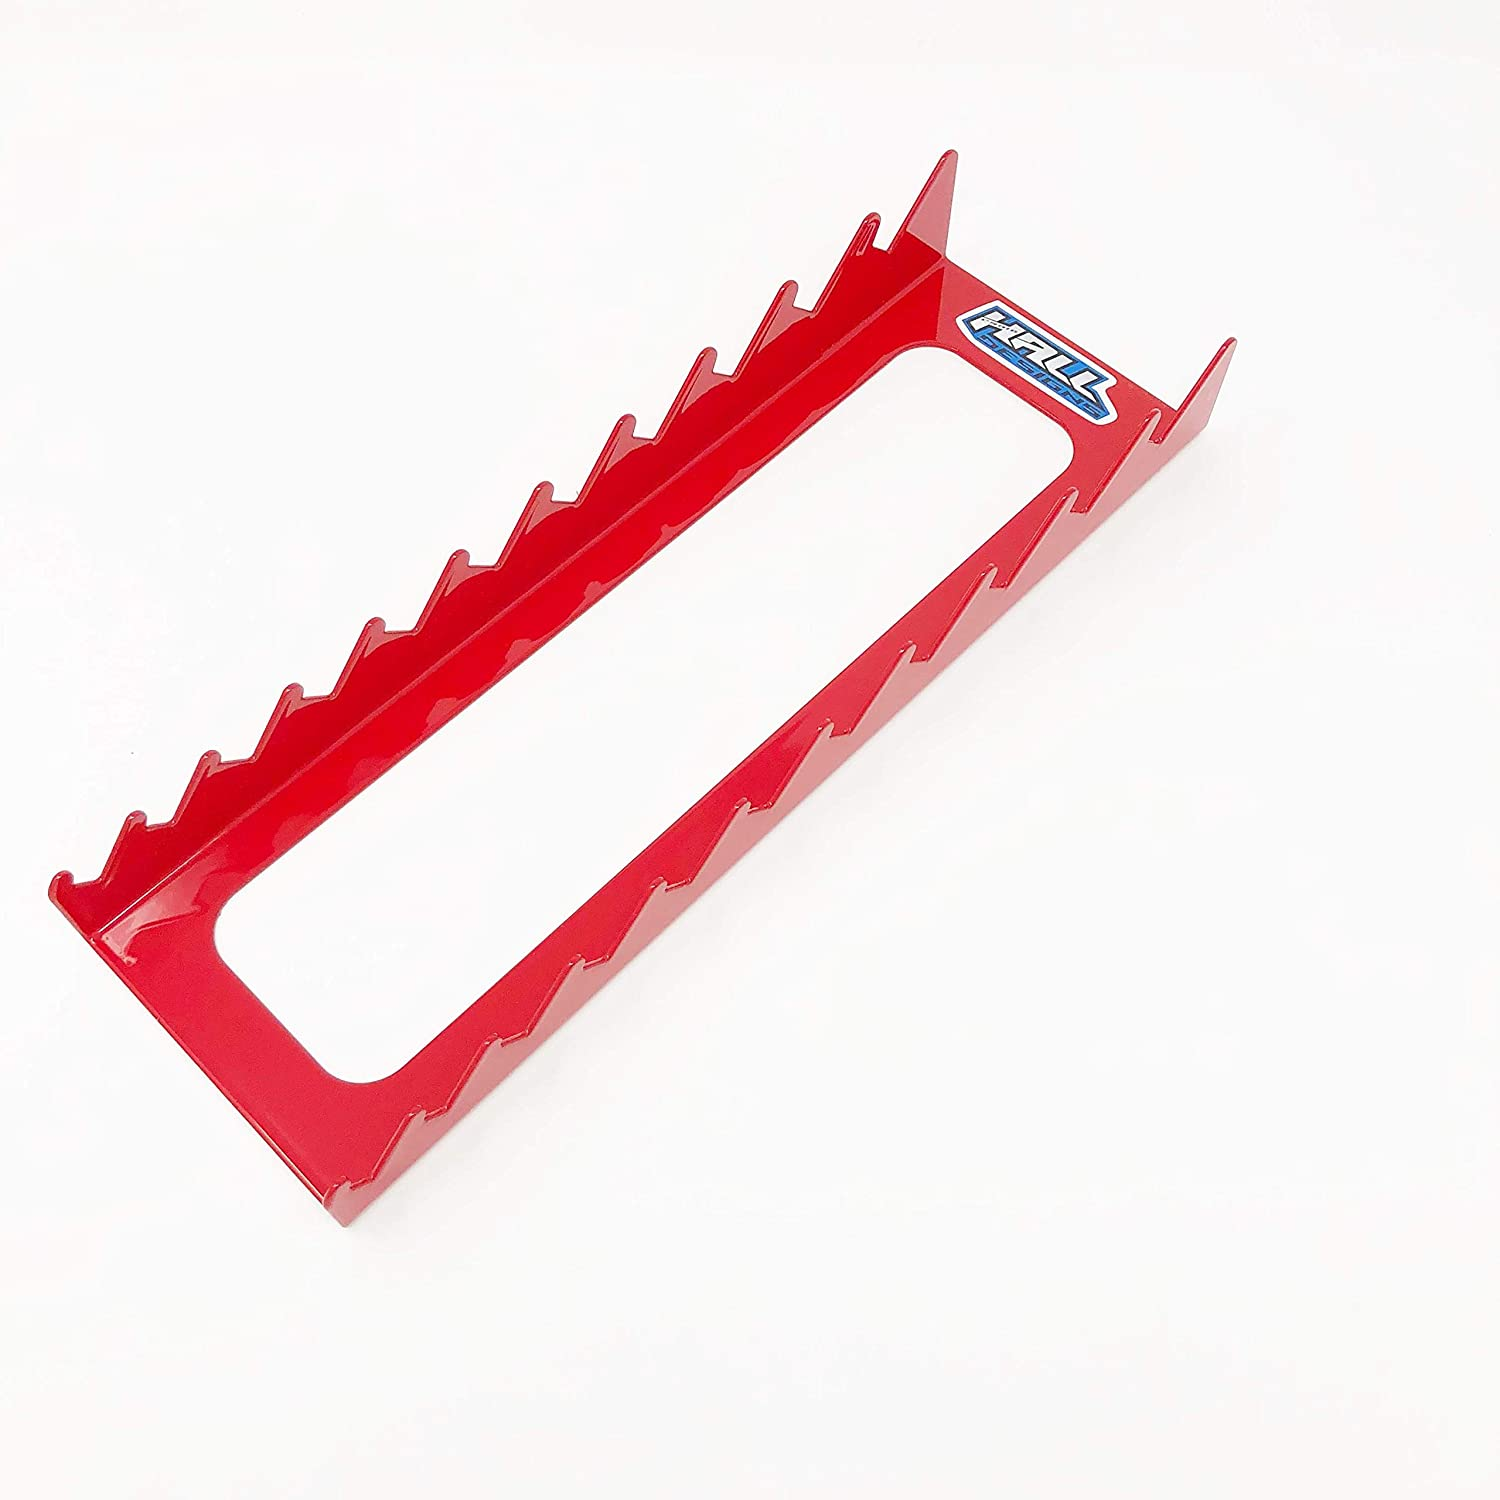 Wrench rack organizer by El Paso Mall Hall Popular product Designs short l handle 11 slot